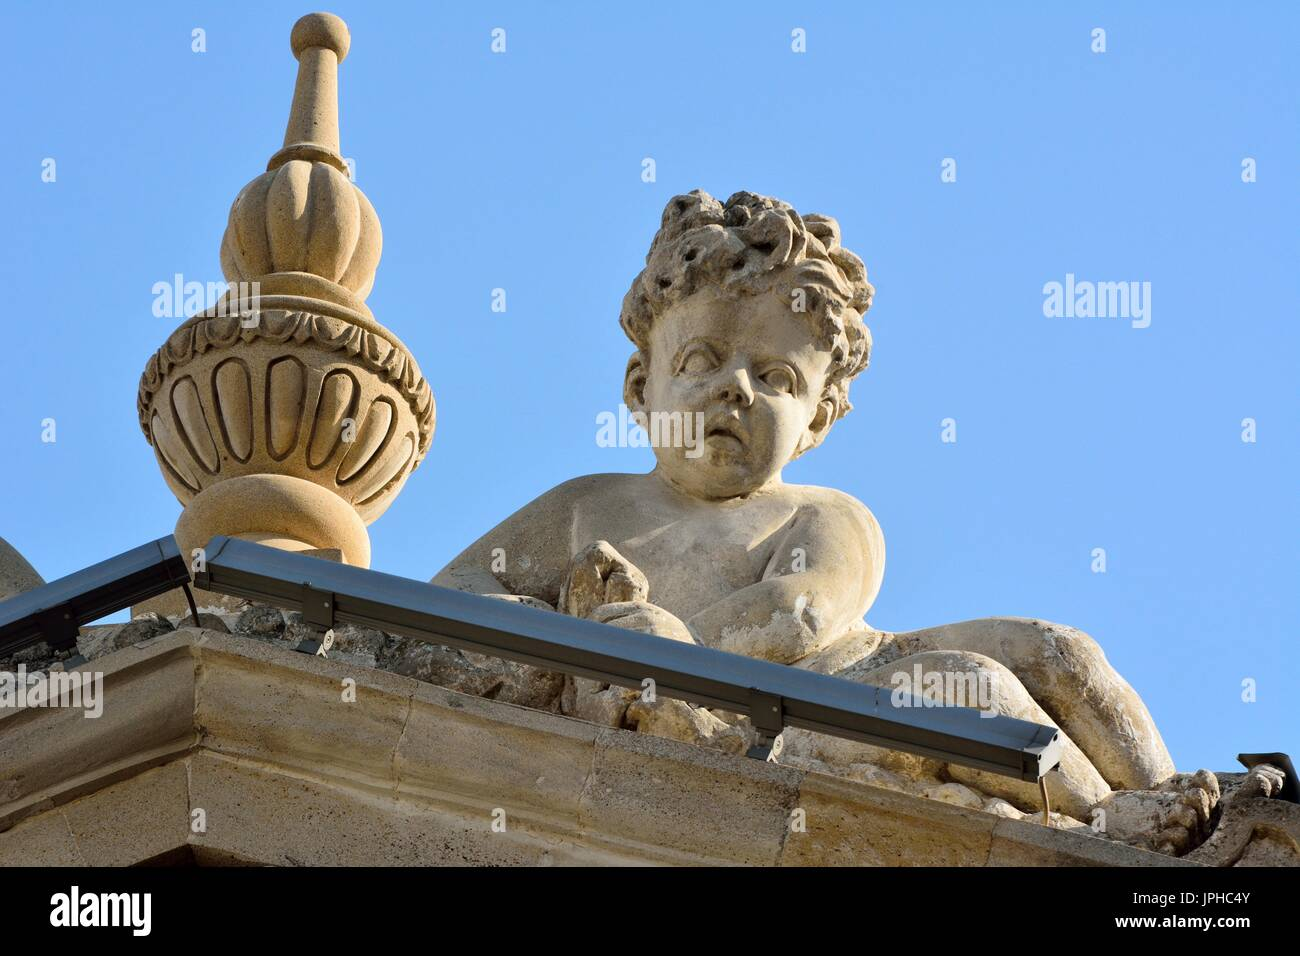 Sculpture of angel boy on facade of architectural building in downtown Baku. - Stock Image